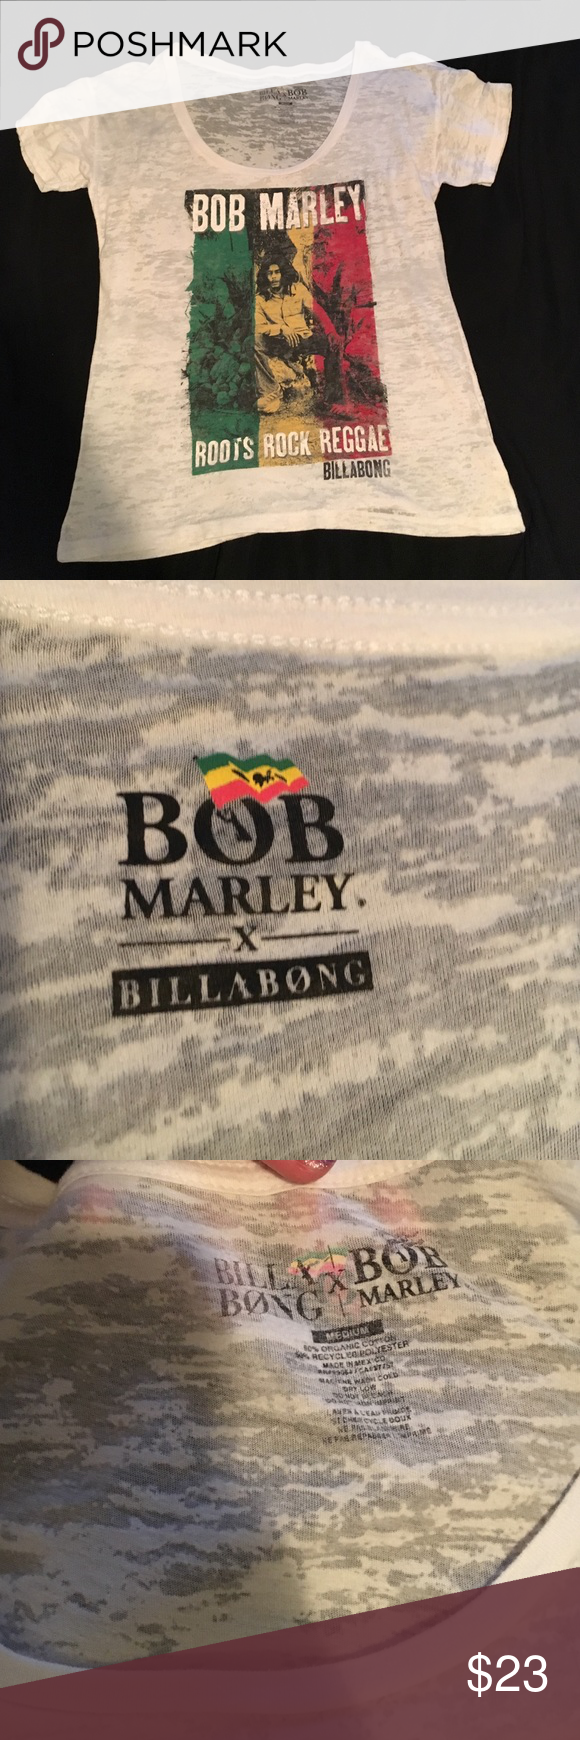 LIMITED EDITION BOB MARLEY BILLABONG T-SHIRT! Brand: Billabong Purchased at Tilly's. I wore this ONCE to an event for Tilly's when I worked at Tilly's! It's lightweight, made of organic cotton, and did I mention LIMITED EDITION! Billabong Tops Tees - Short Sleeve